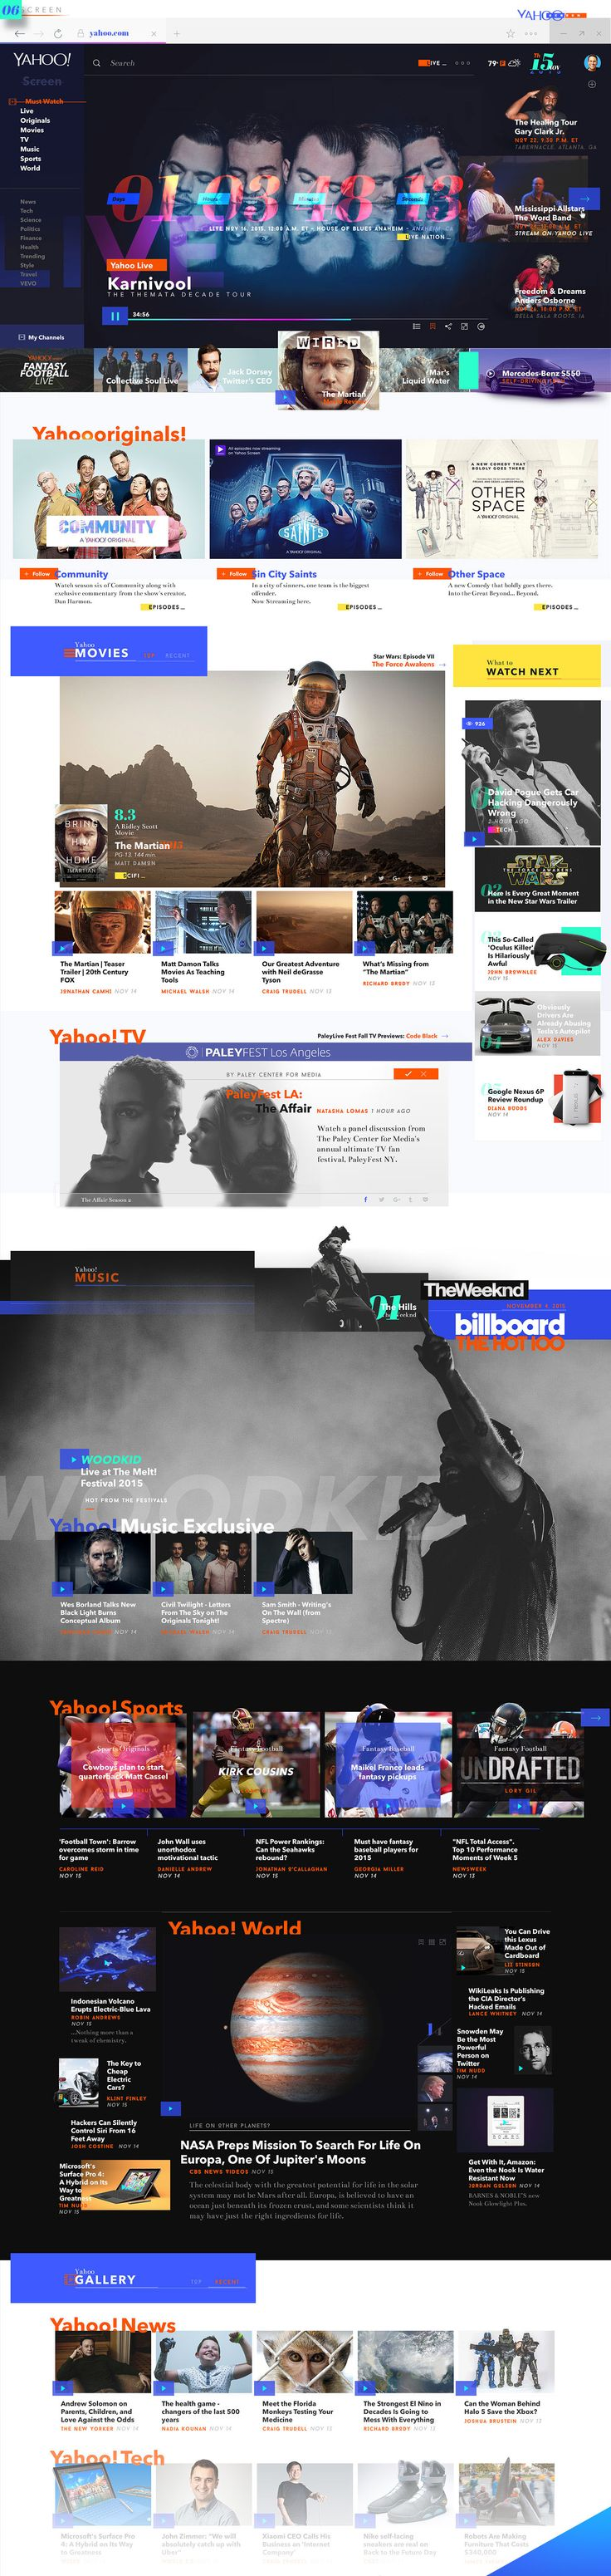 Yahoo! News Redesign Experience on Behance